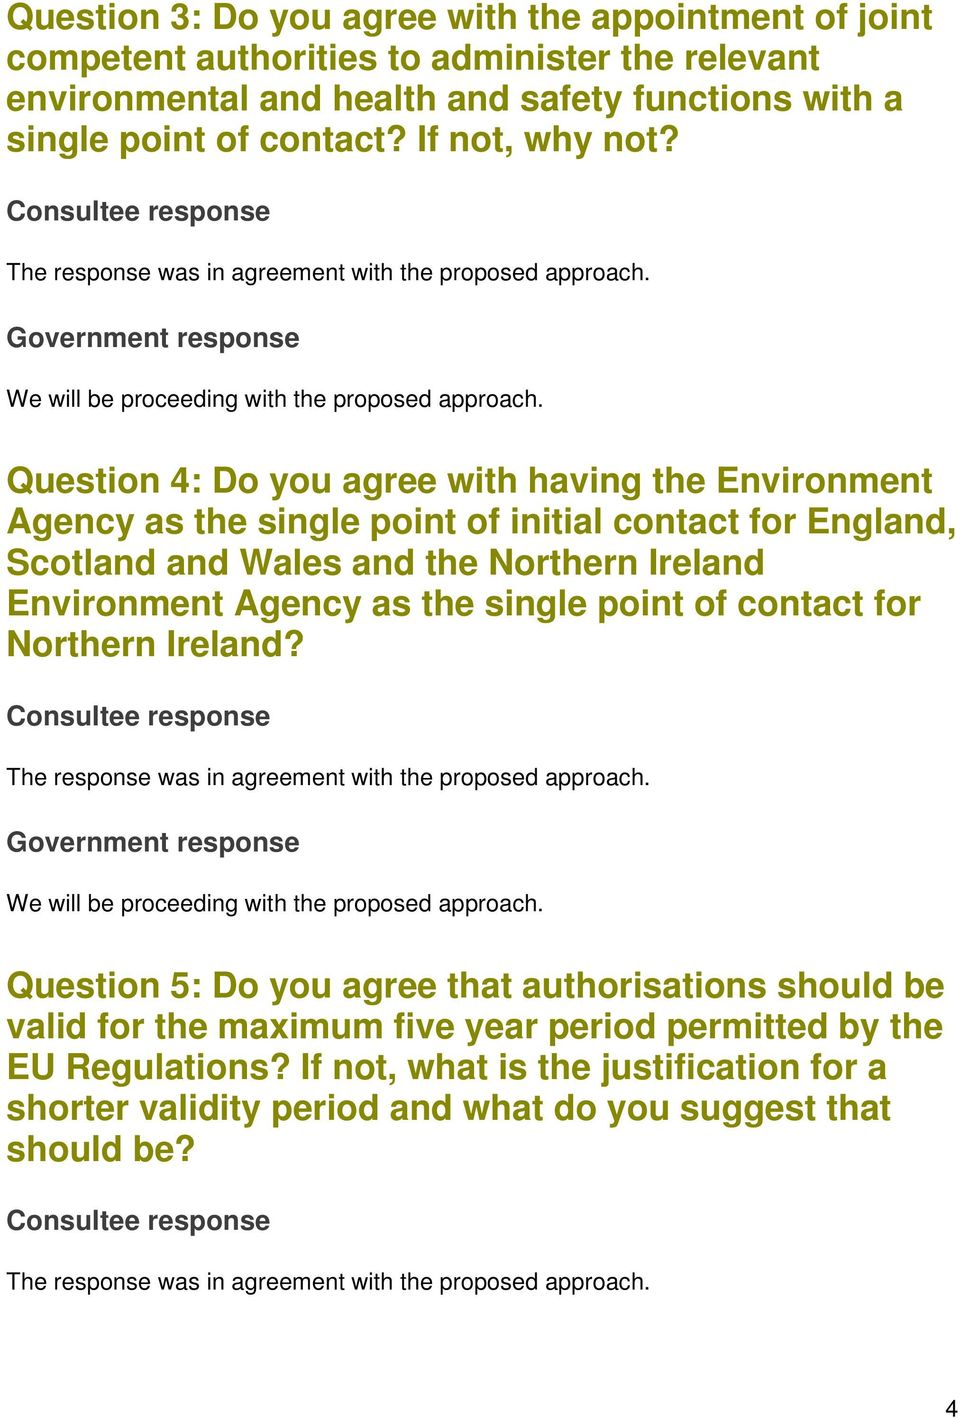 Question 4: Do you agree with having the Environment Agency as the single point of initial contact for England, Scotland and Wales and the Northern Ireland Environment Agency as the single point of